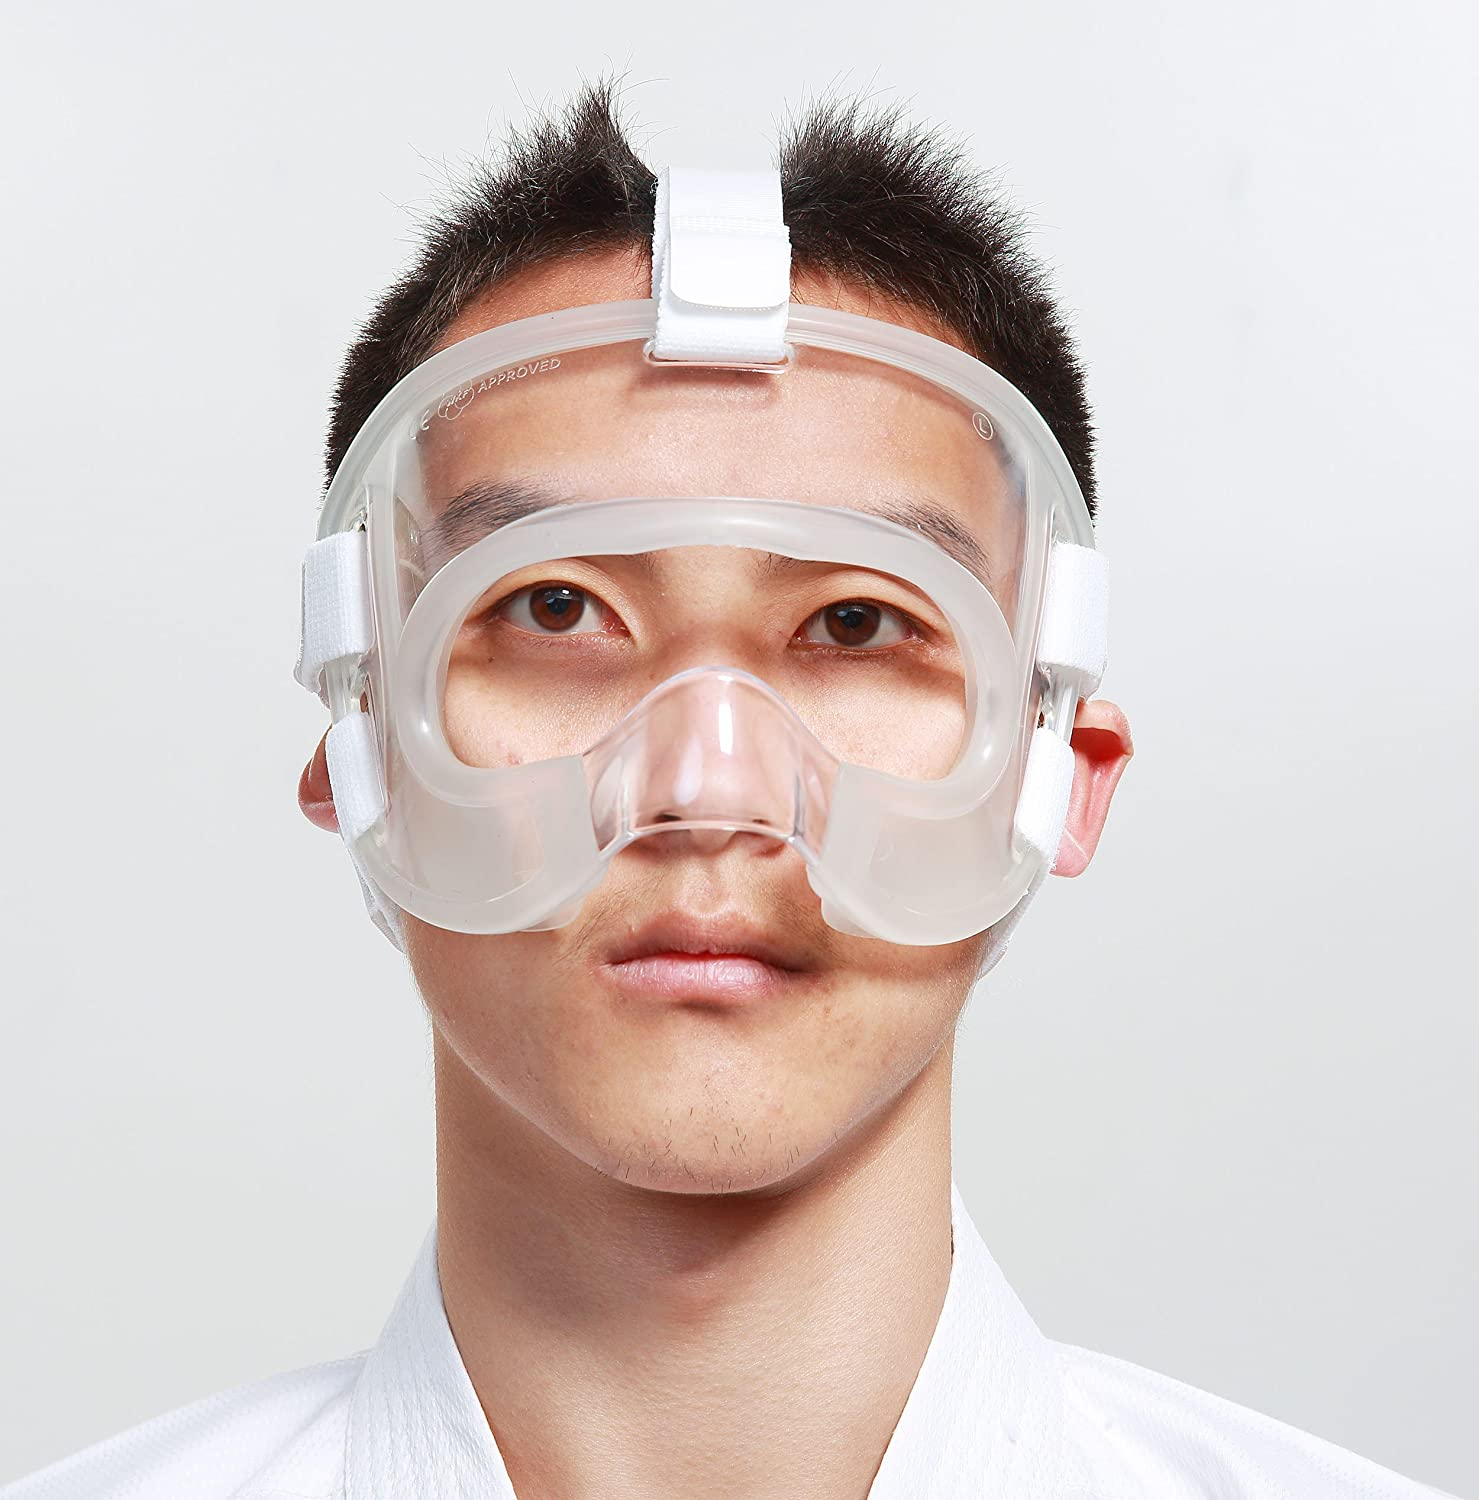 wesing Karate face Shield face Nose Protector with Extra Grip Padding